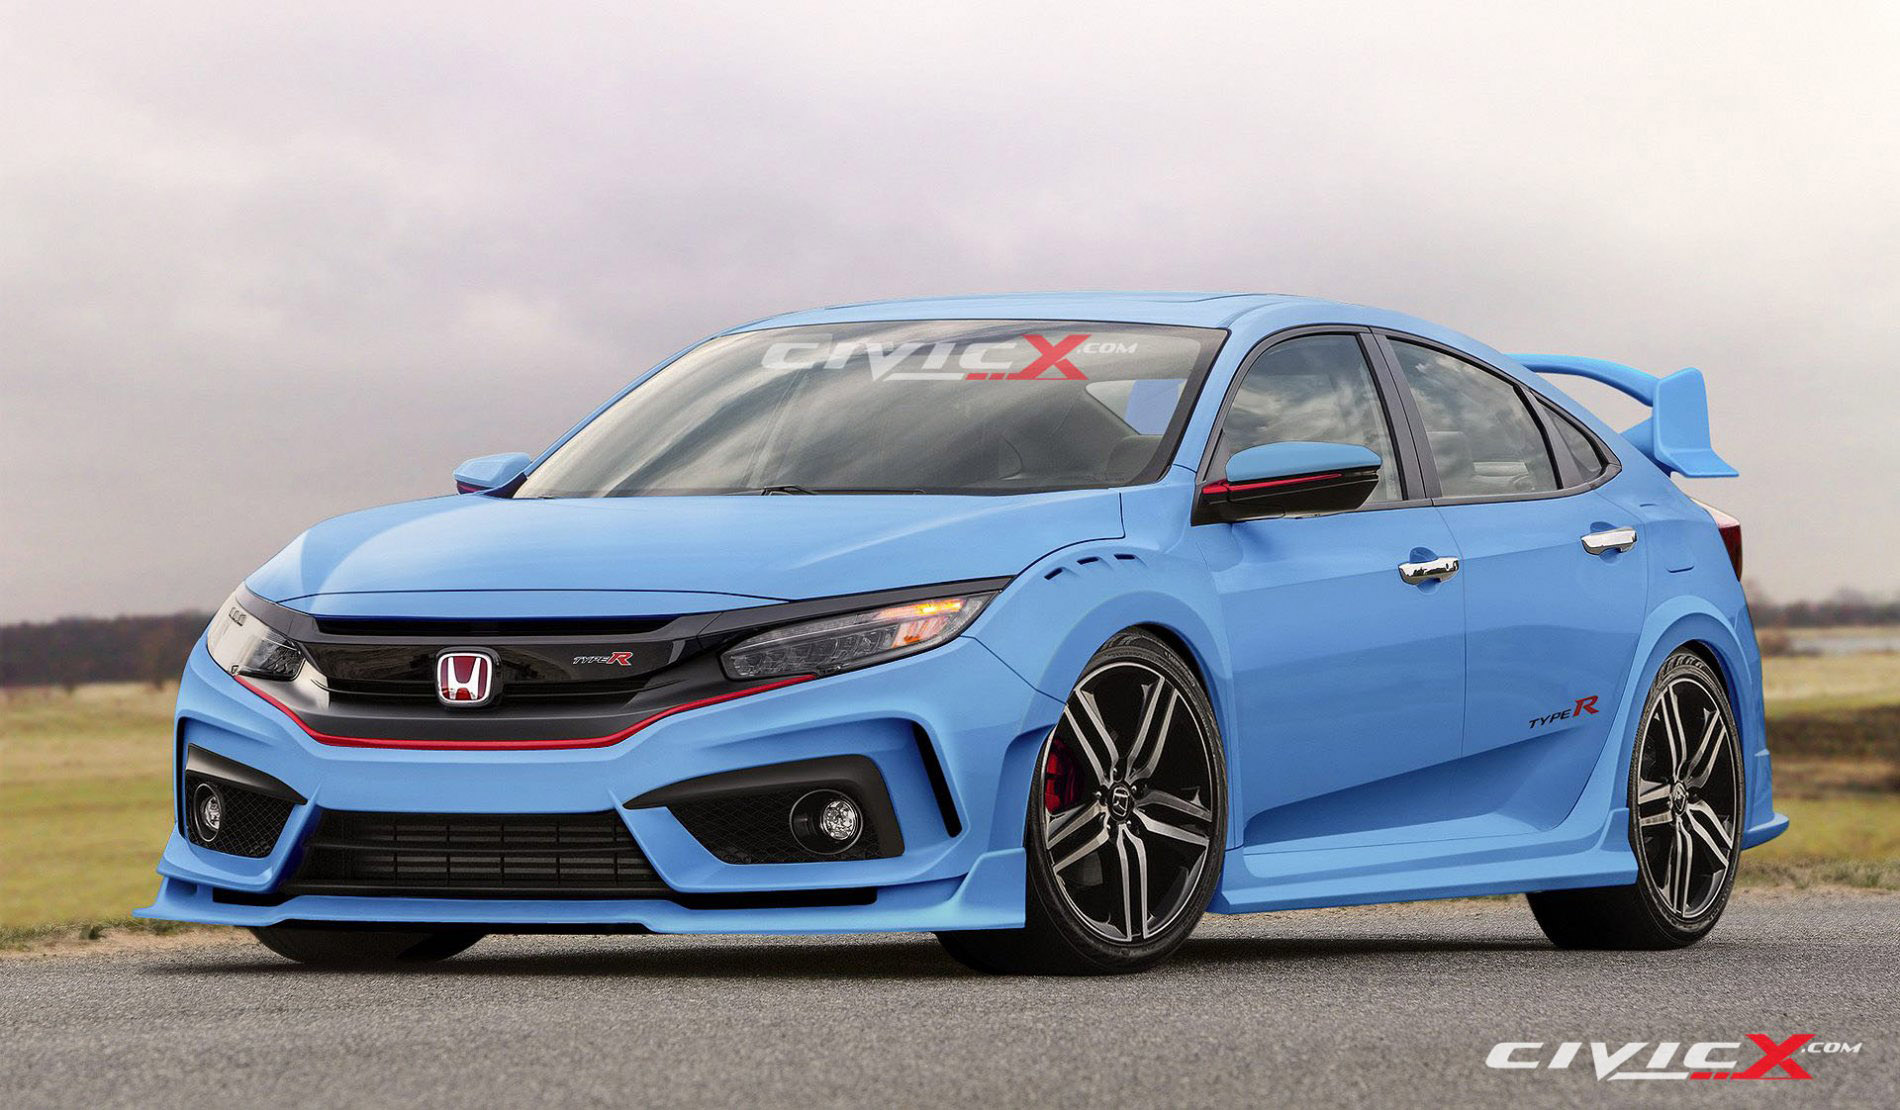 2017 Honda Civic Type R Hatchback Prototype By Civicx Picture 126446